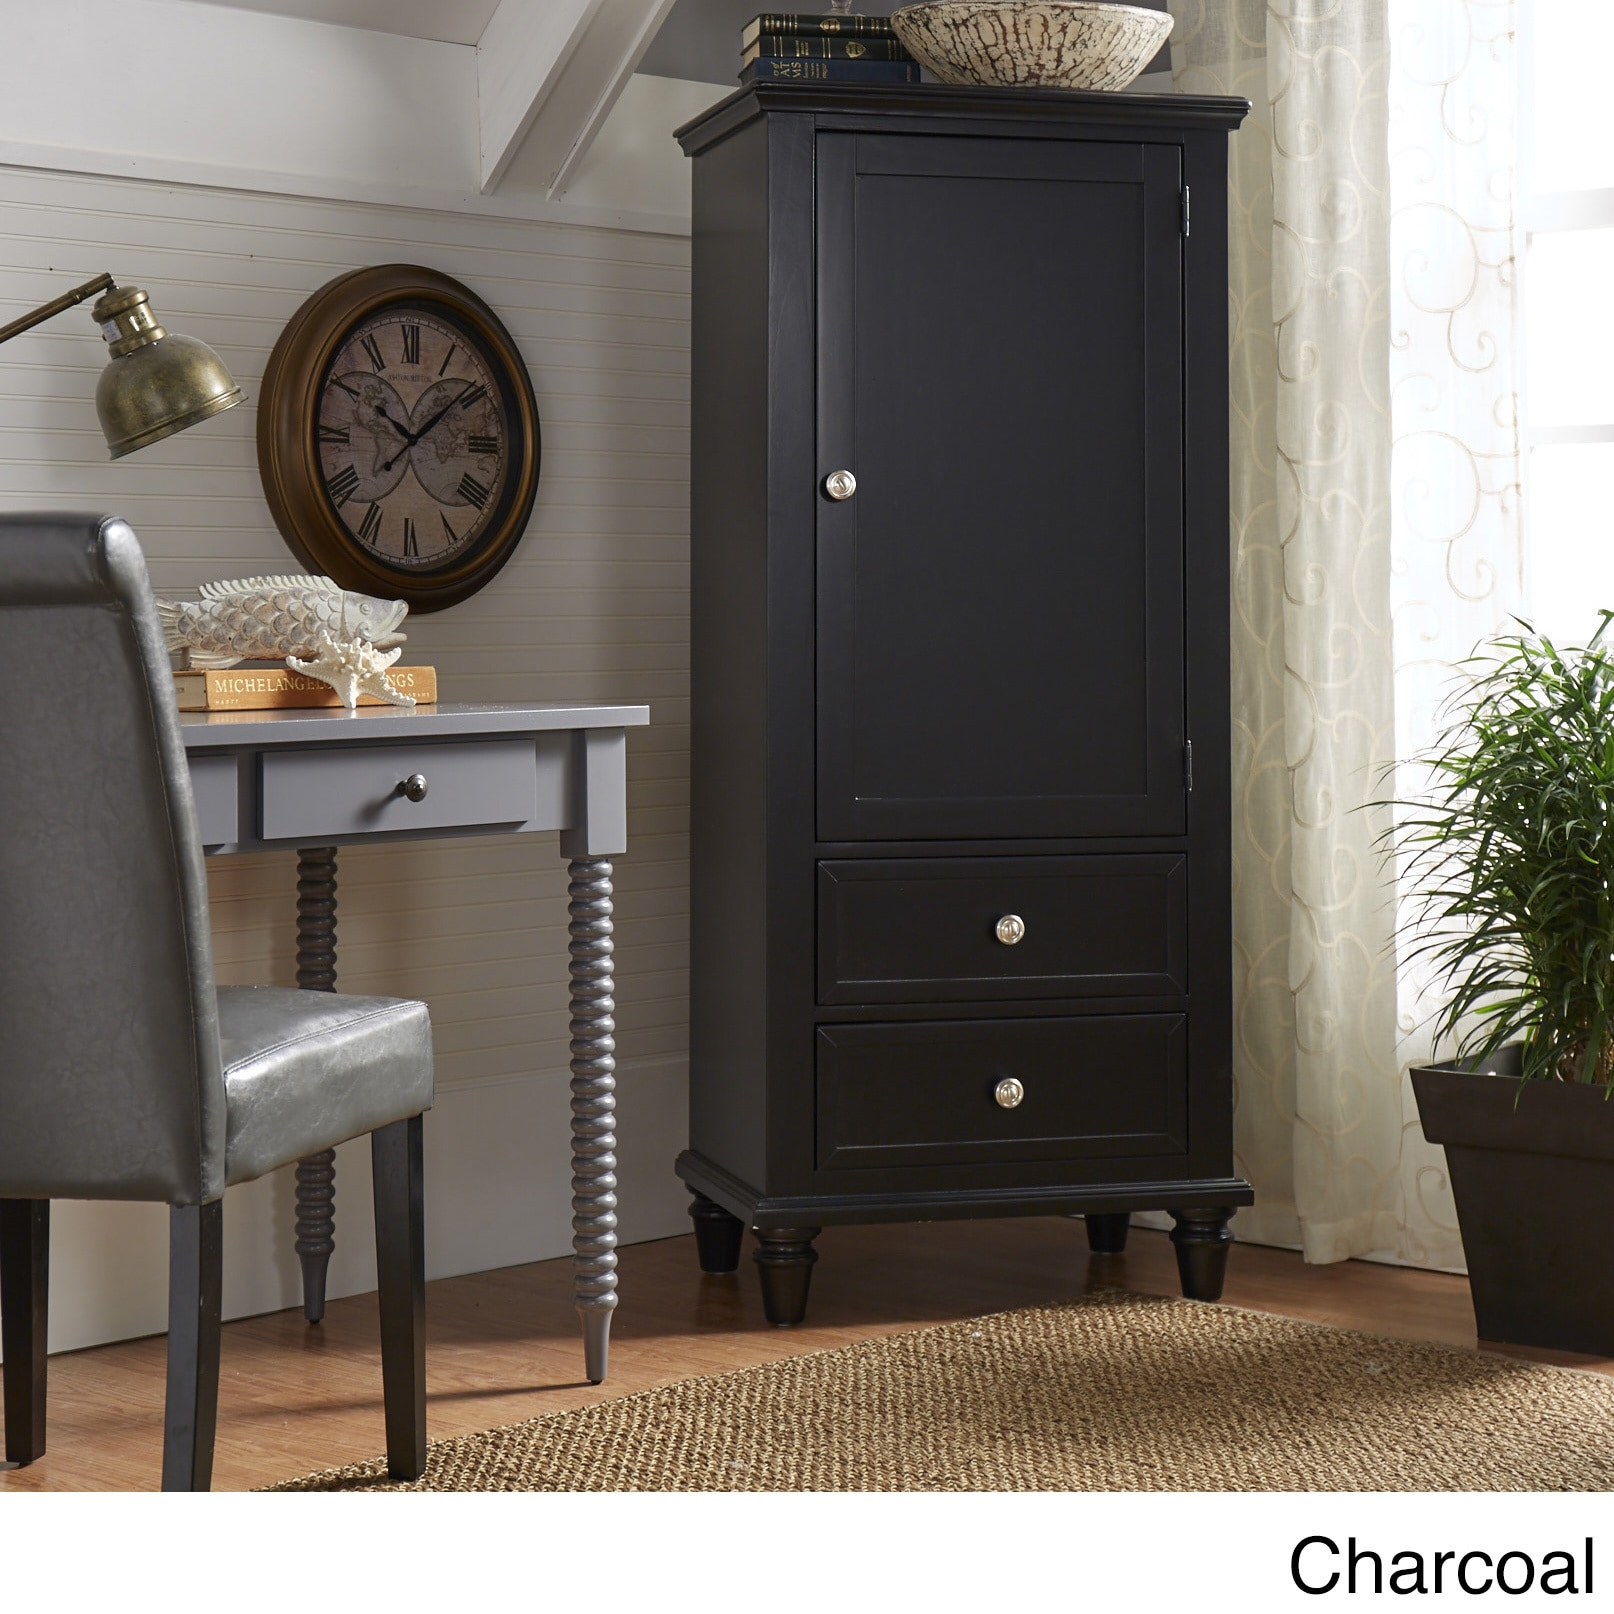 Beau Preston Wooden Wardrobe Storage Armoire By INSPIRE Q Junior (Option:  Charcoal Black Finish)